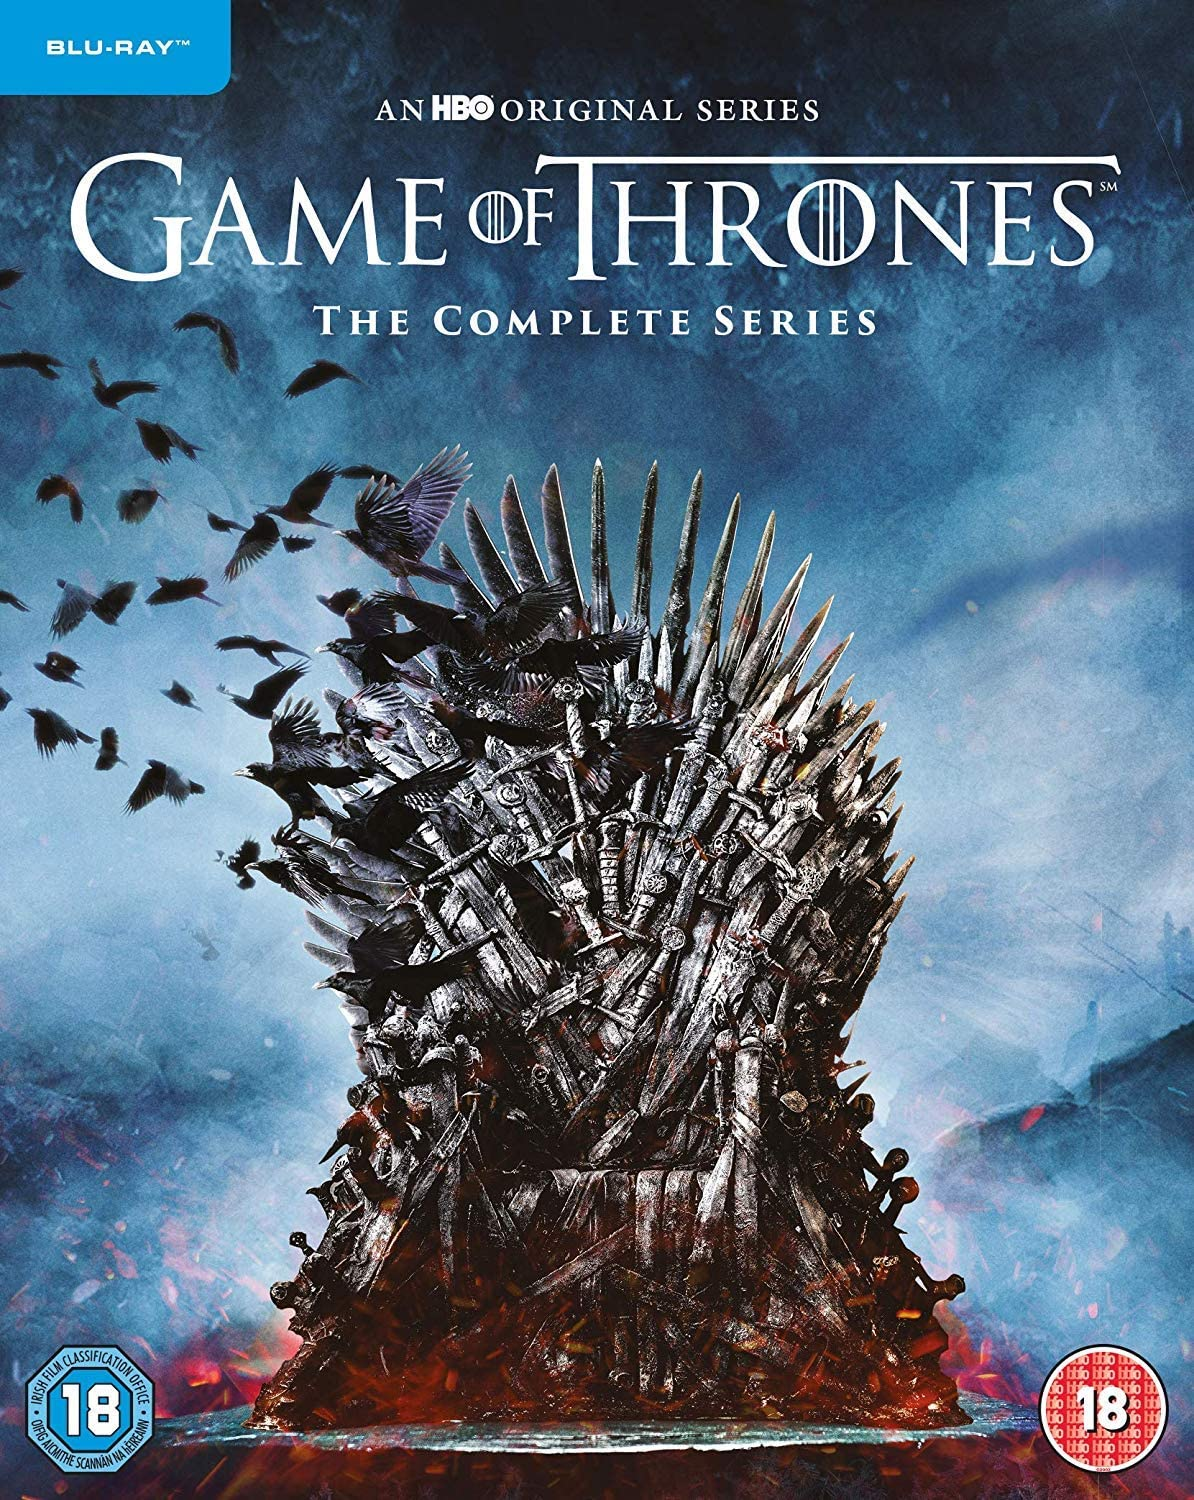 Game of Thrones: The Complete Series (2019) [BLU-RAY]